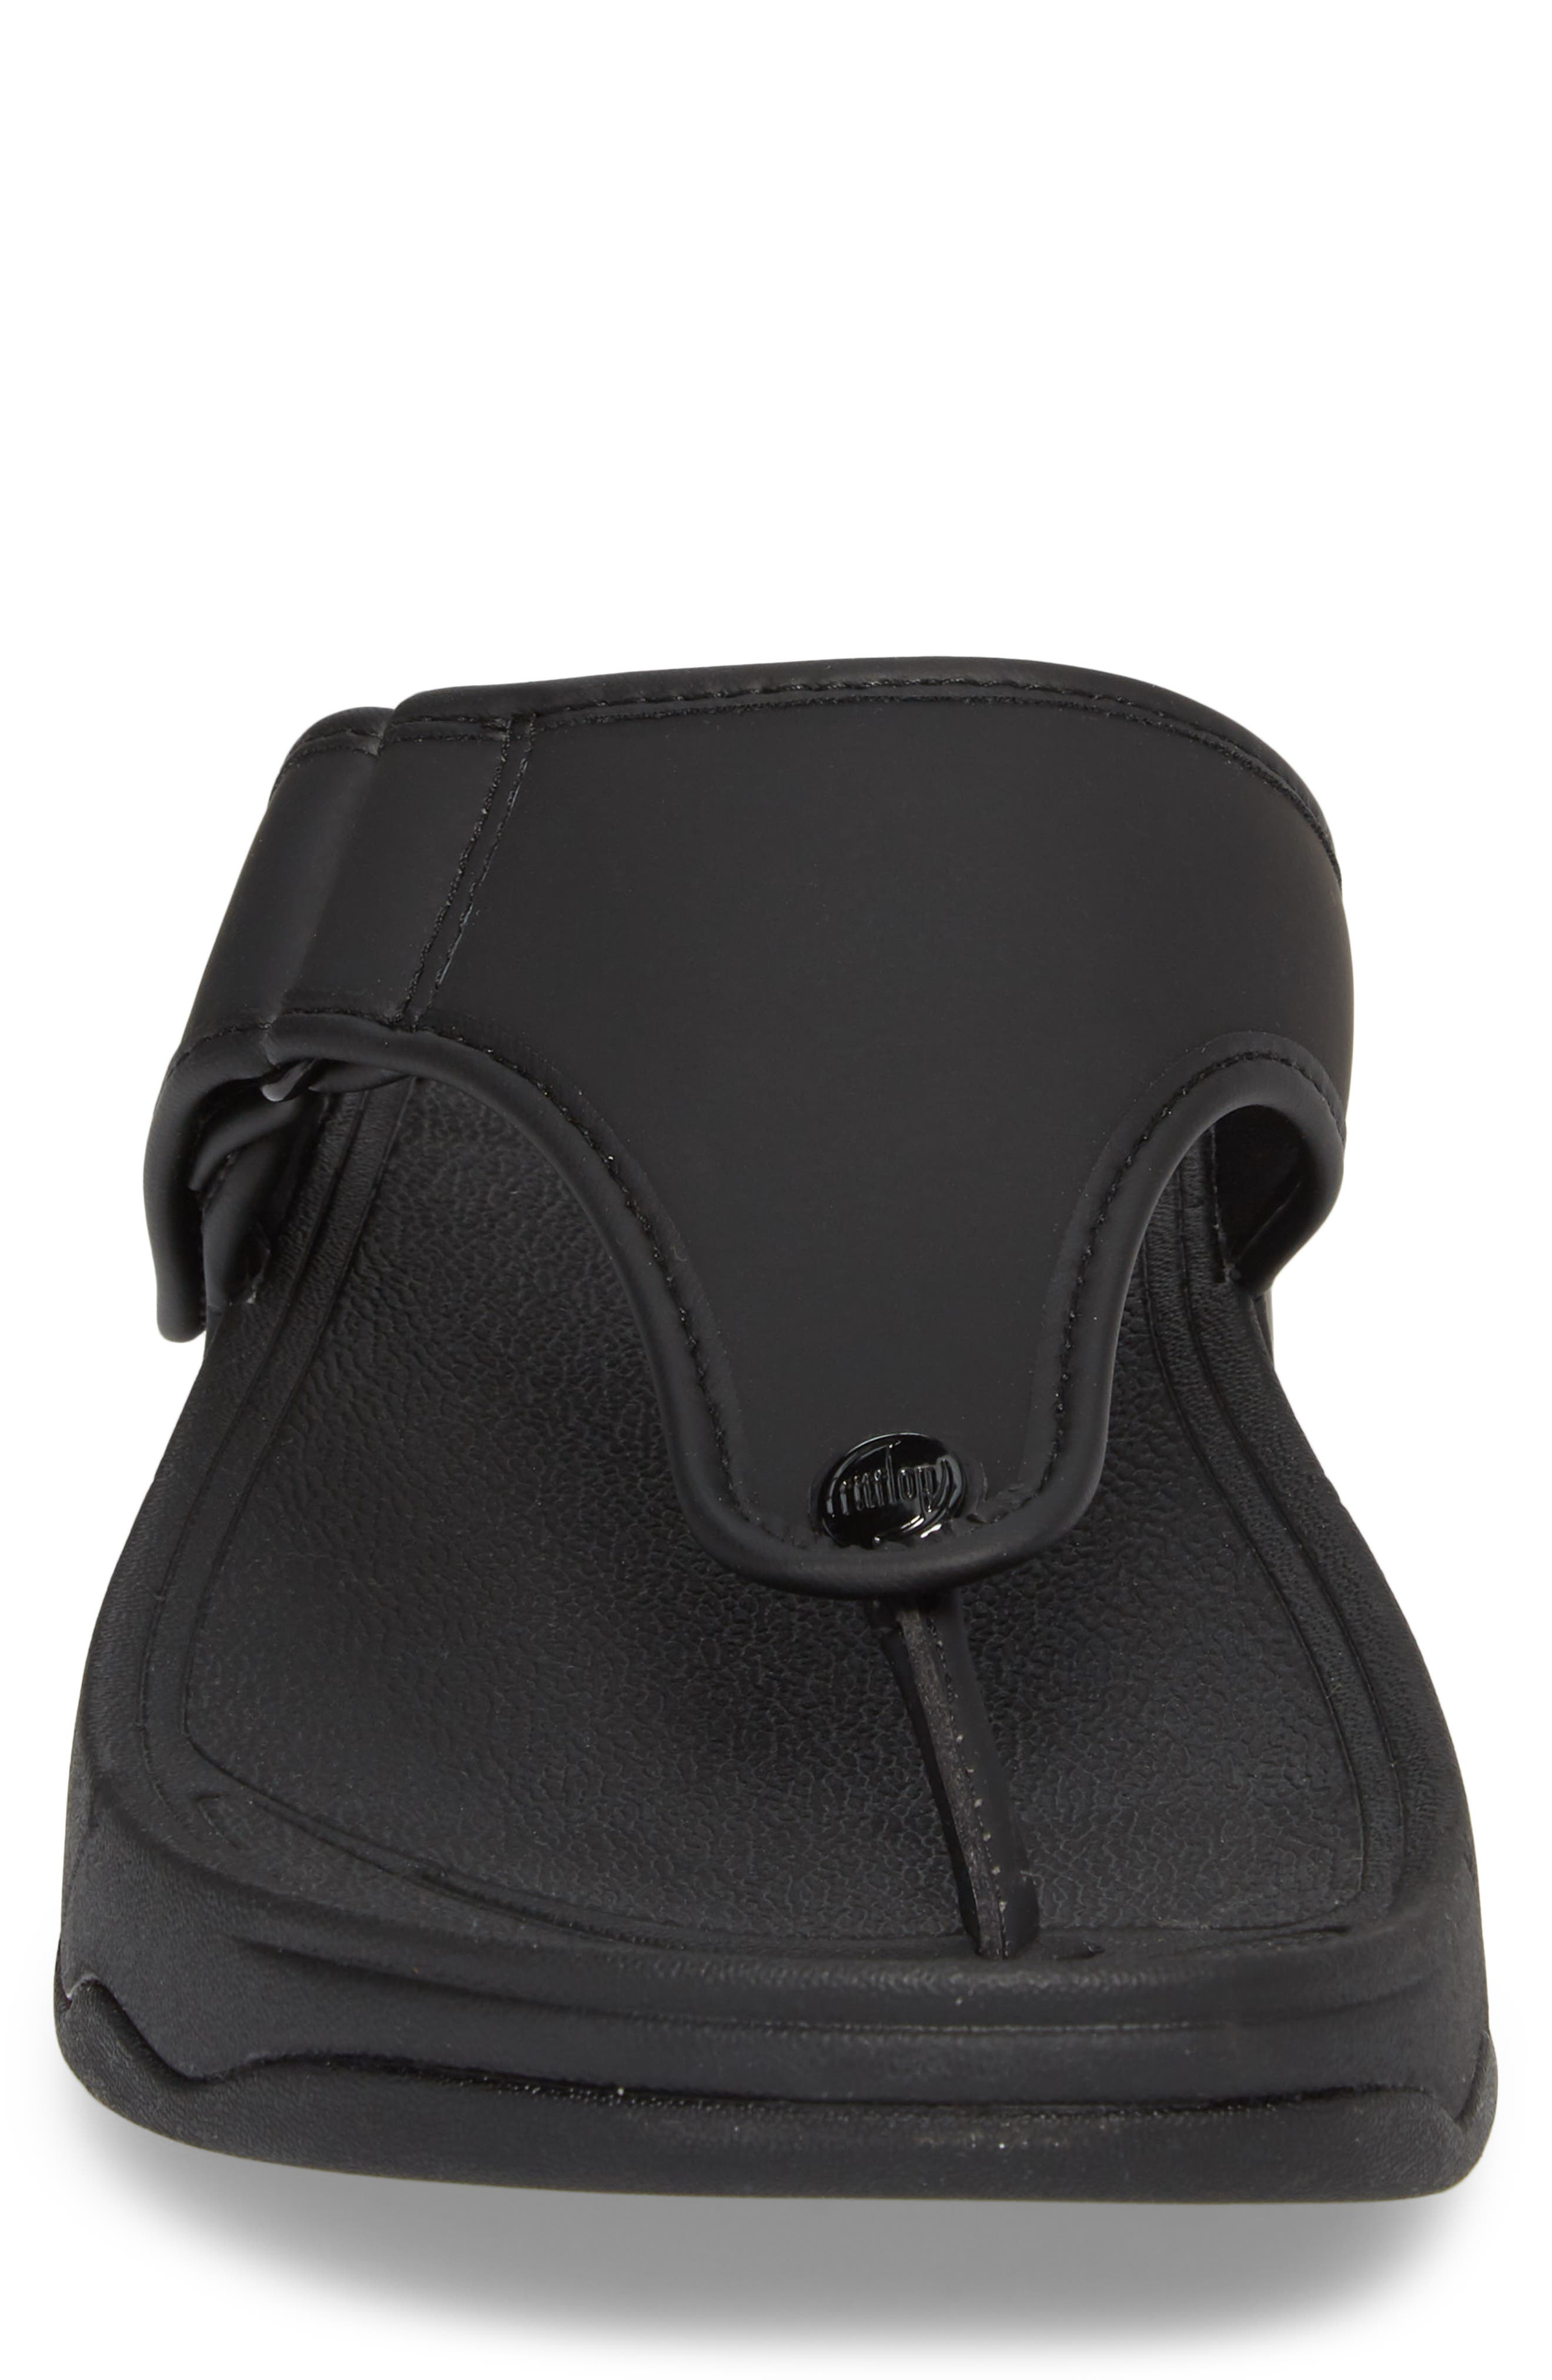 Trakk<sup>™</sup> II Sandal,                             Alternate thumbnail 4, color,                             Black Neoprene